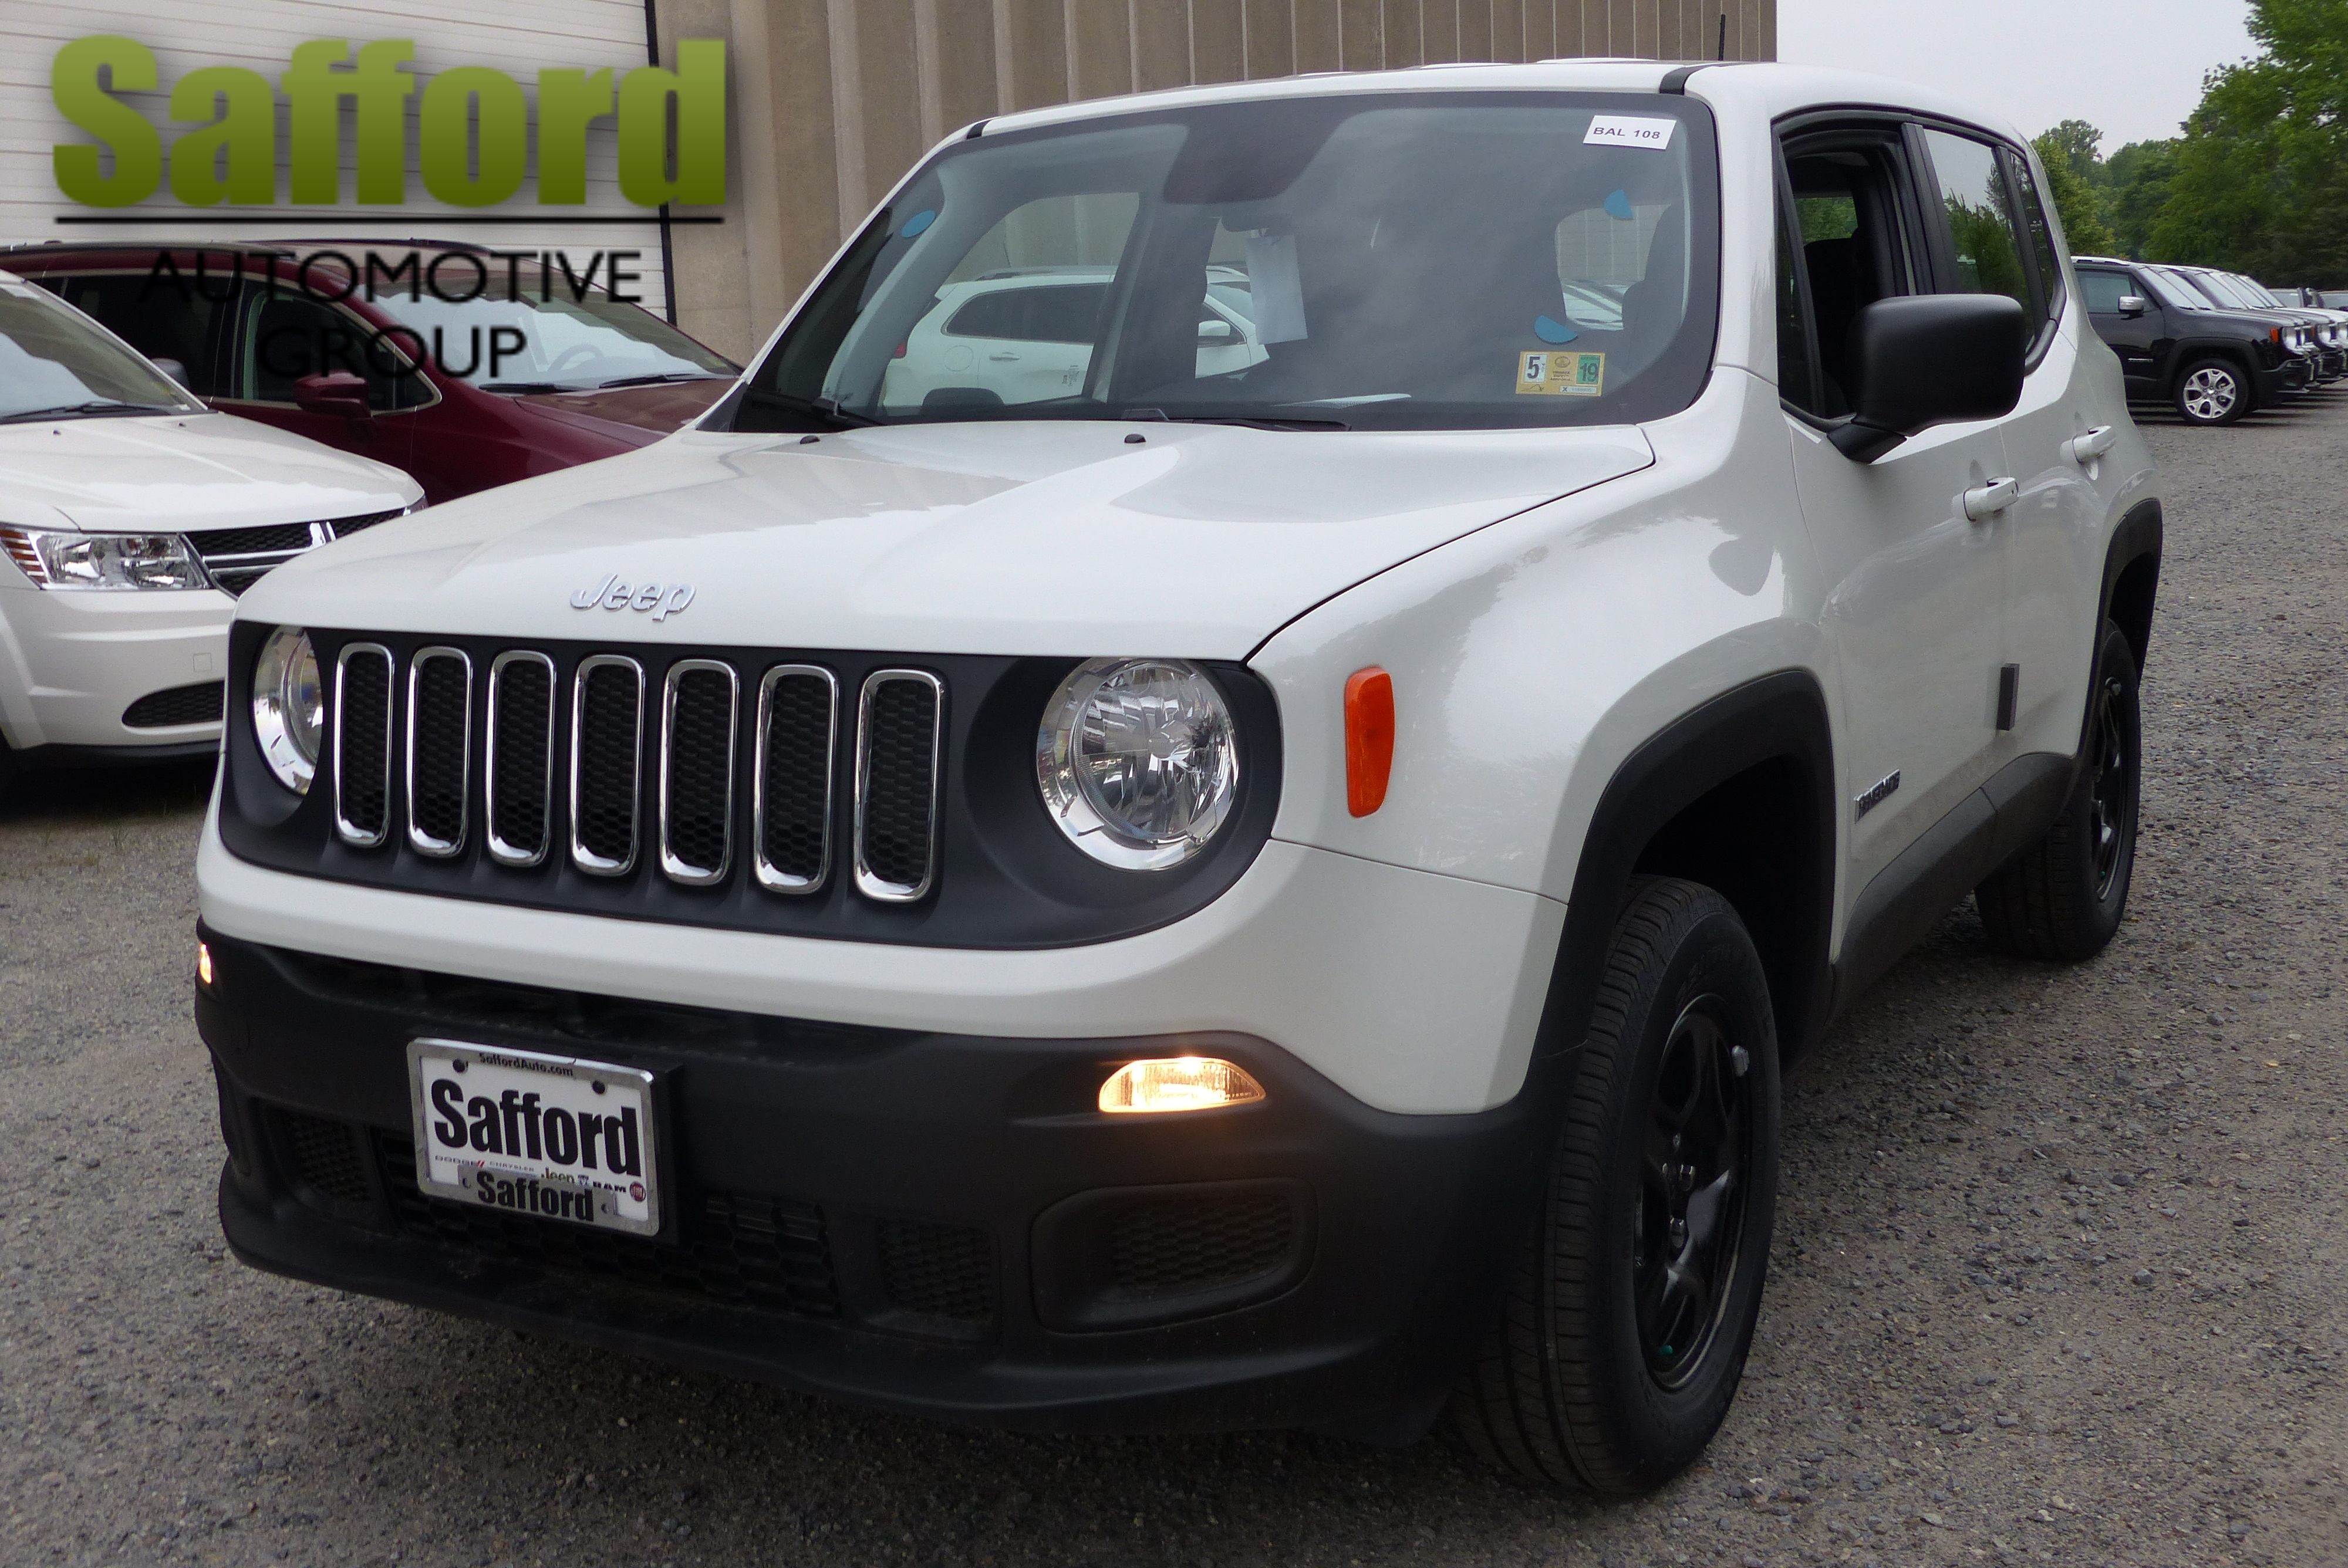 for sale renegade jeep eagle express review night auto